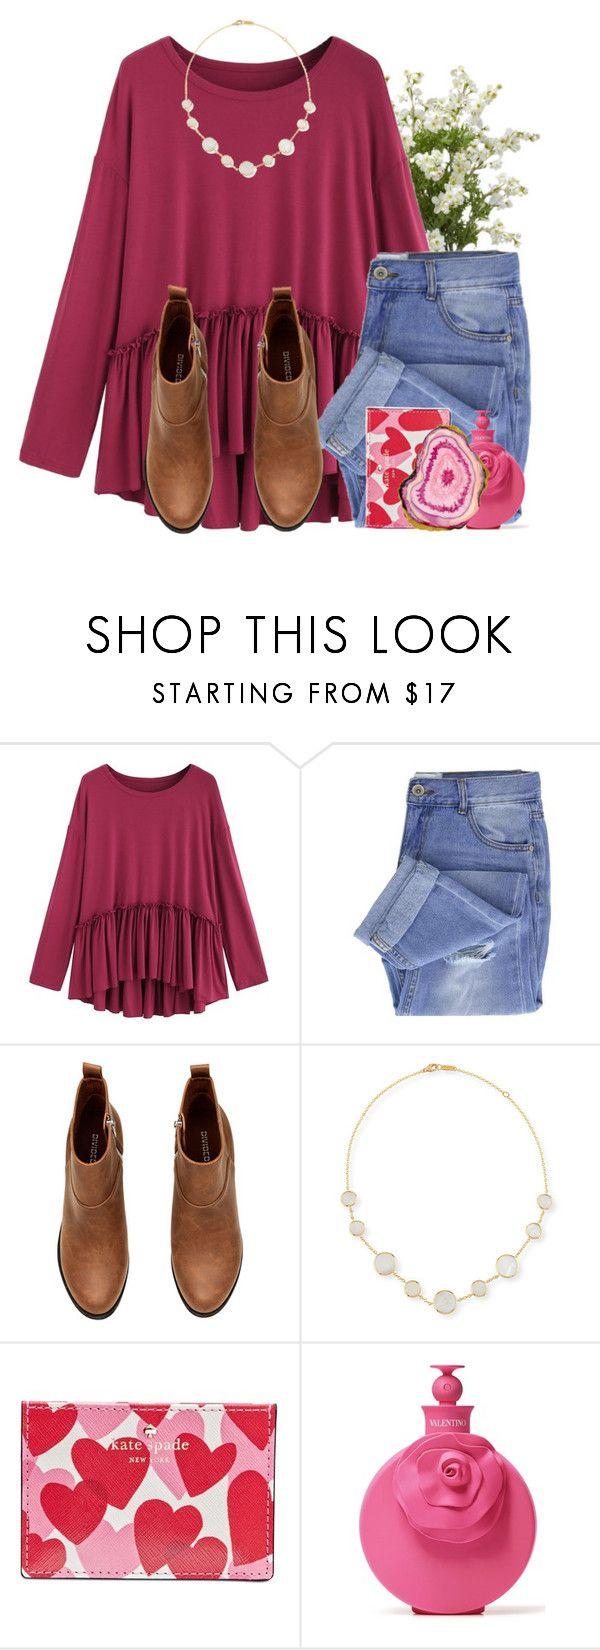 """""""Valentine's Day❤️"""" by lindonhaley ❤ liked on Polyvore featuring Taya, H&M, Ippolita, Kate Spade and Valentino"""